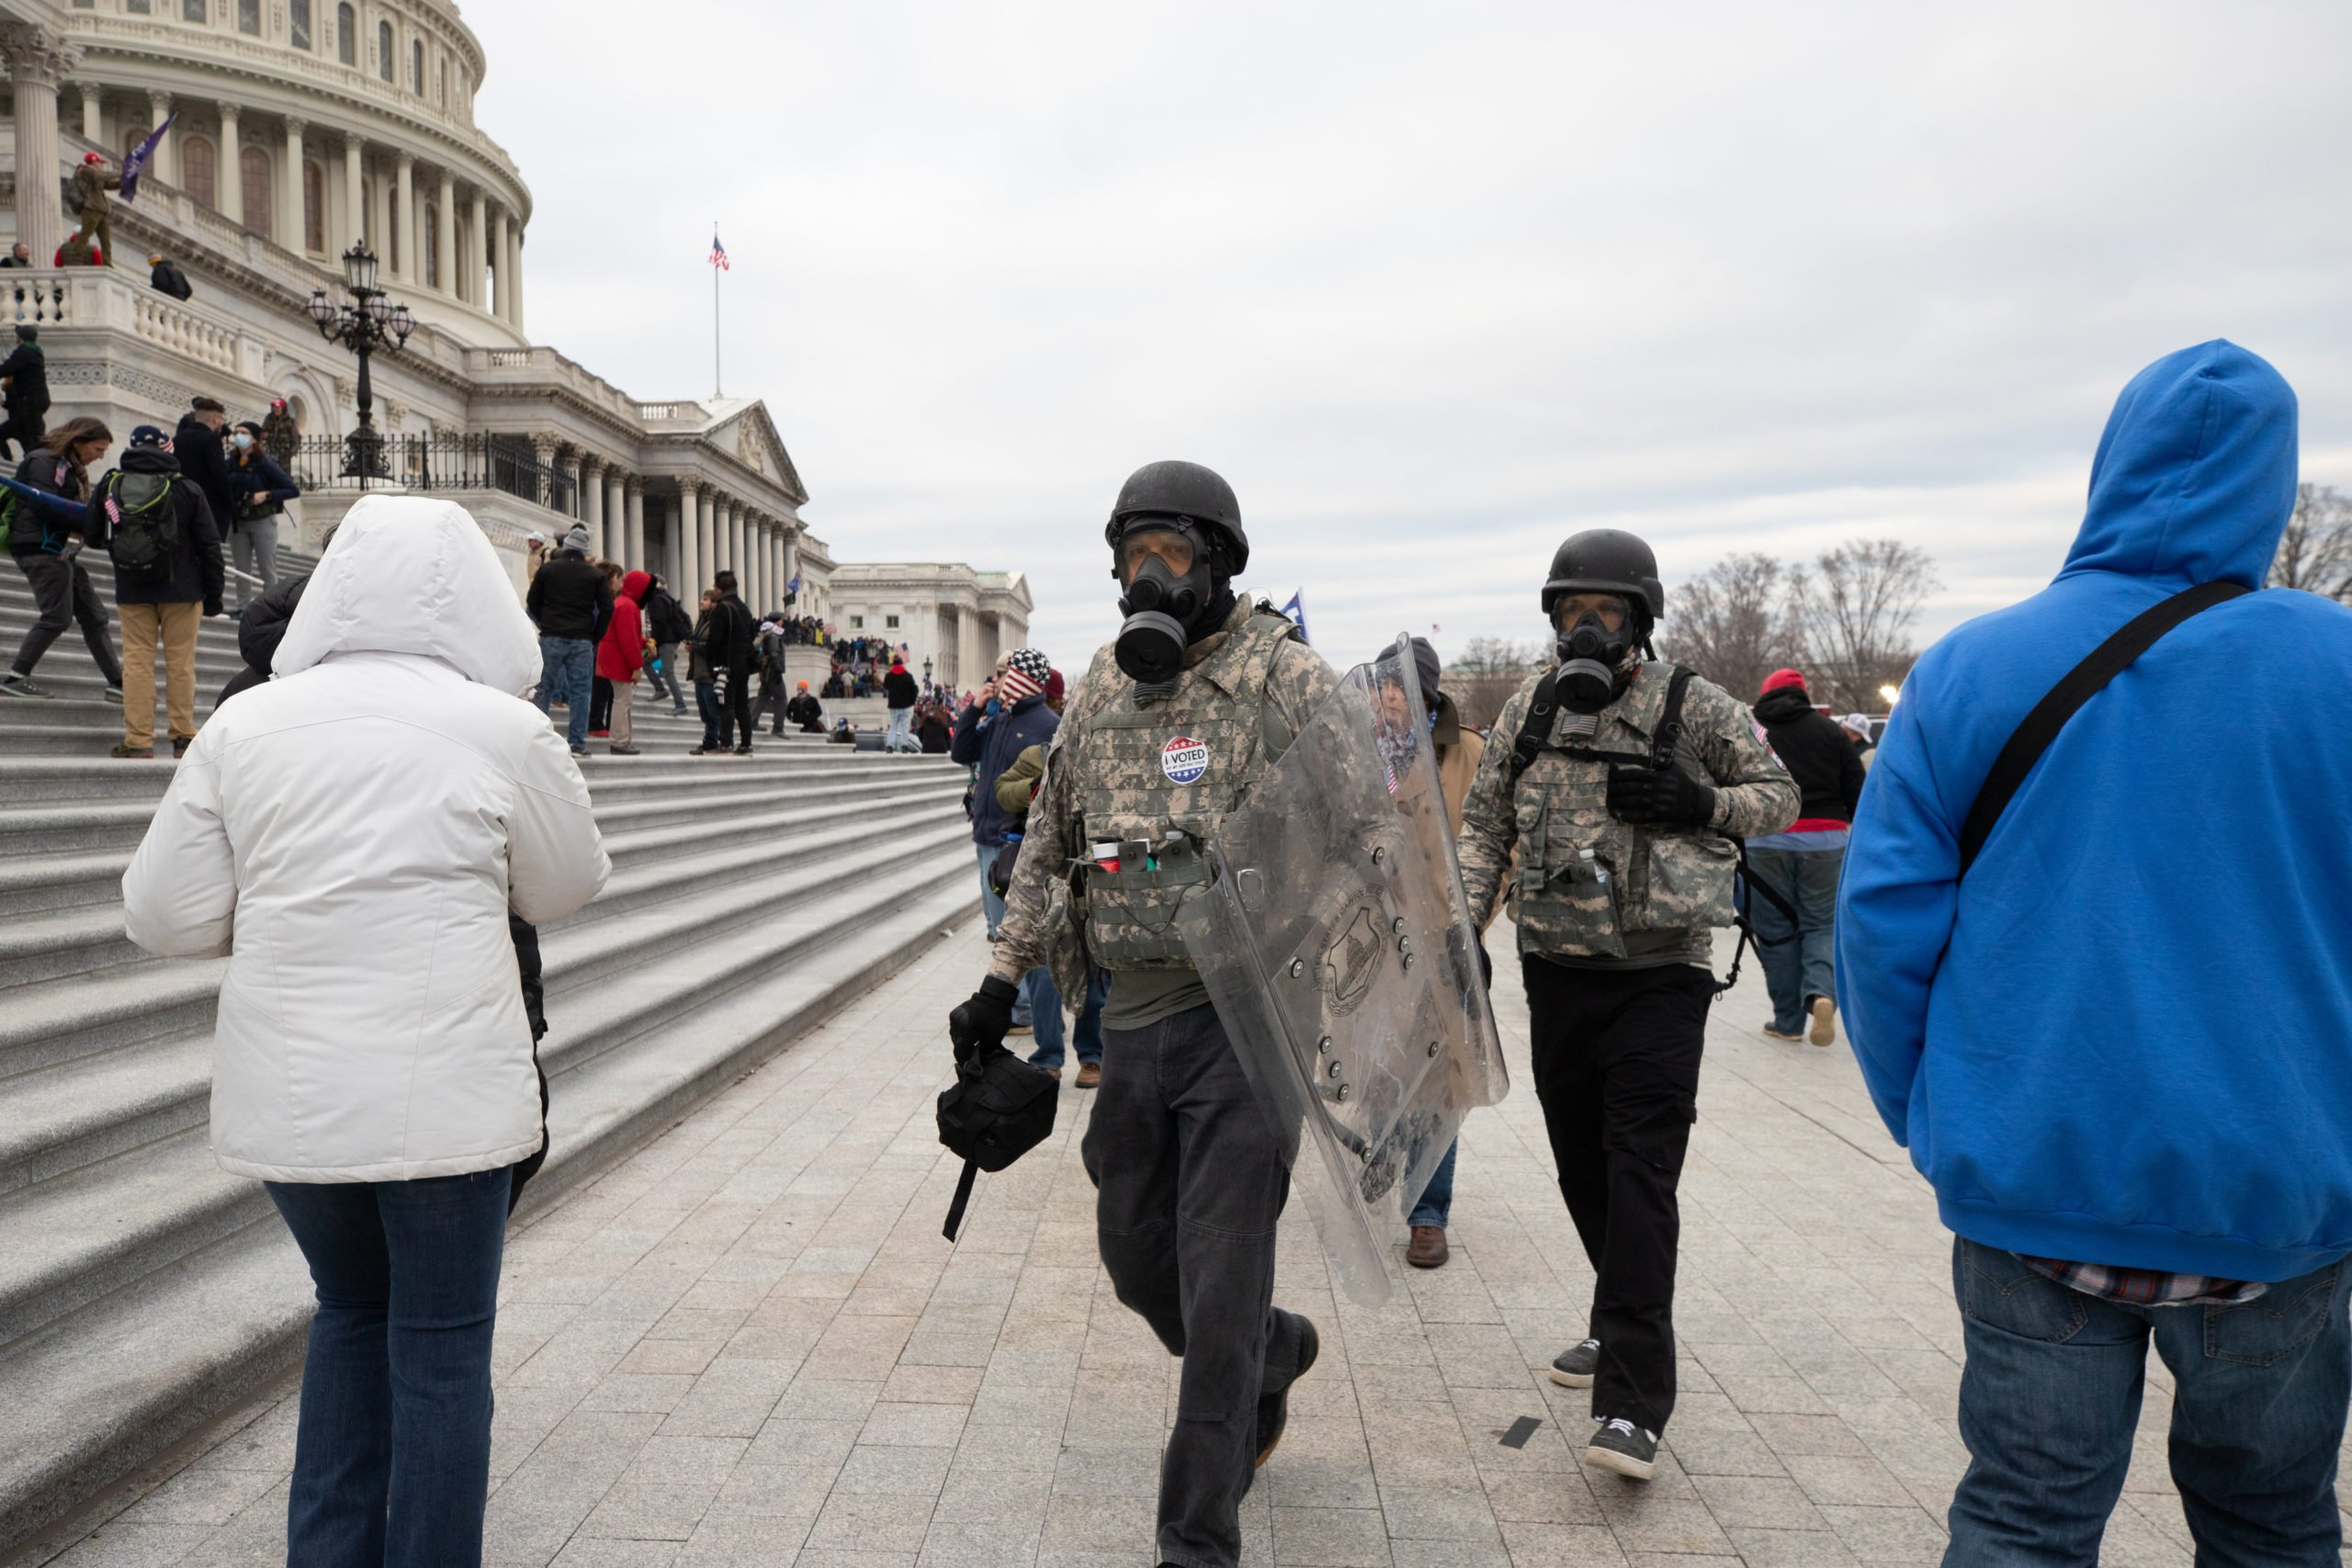 Rioters were seen carrying Capitol Police riot gear including shields and vests outside the Capitol Building on Jan. 6, 2021 in Washington, D.C. (Kaylee Greenlee - Daily Caller News Foundation)